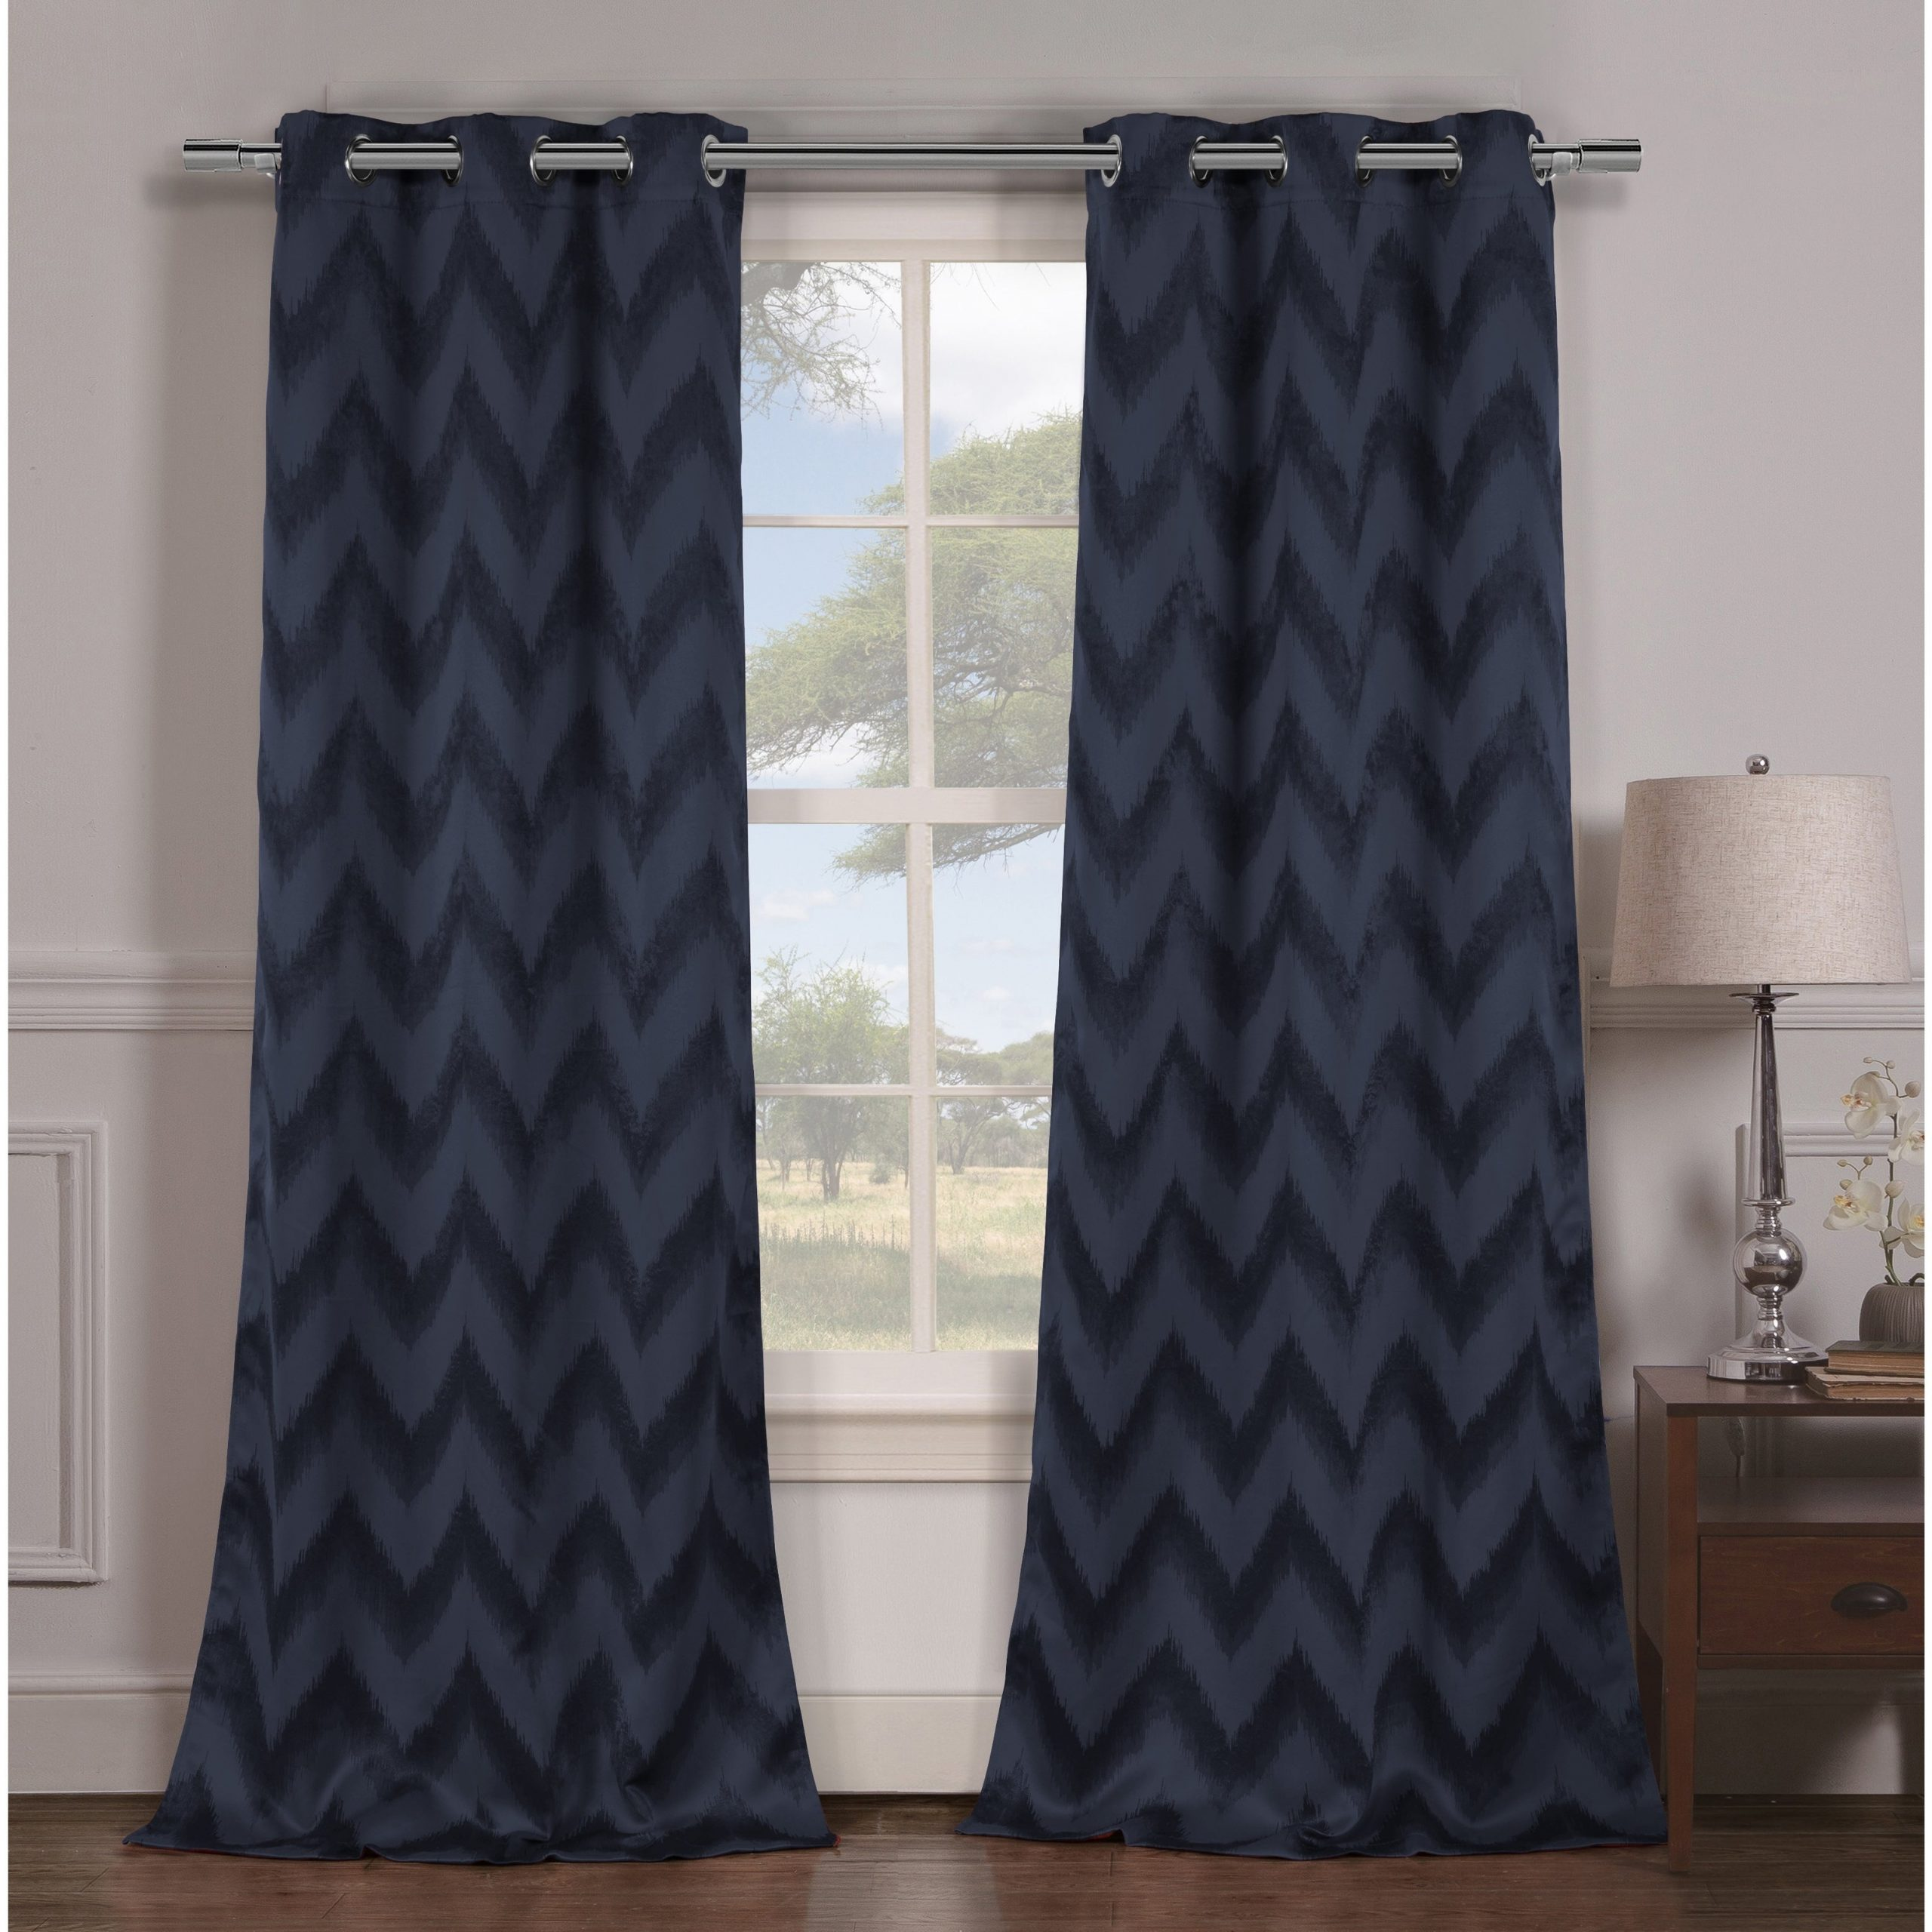 Insulated Grommet Blackout Curtain Panel Pairs Within Newest Detalles Acerca De Duck River Lysanna Grommet Top Thermal Insulated Blackout Curtain Panel Pair – (View 12 of 20)